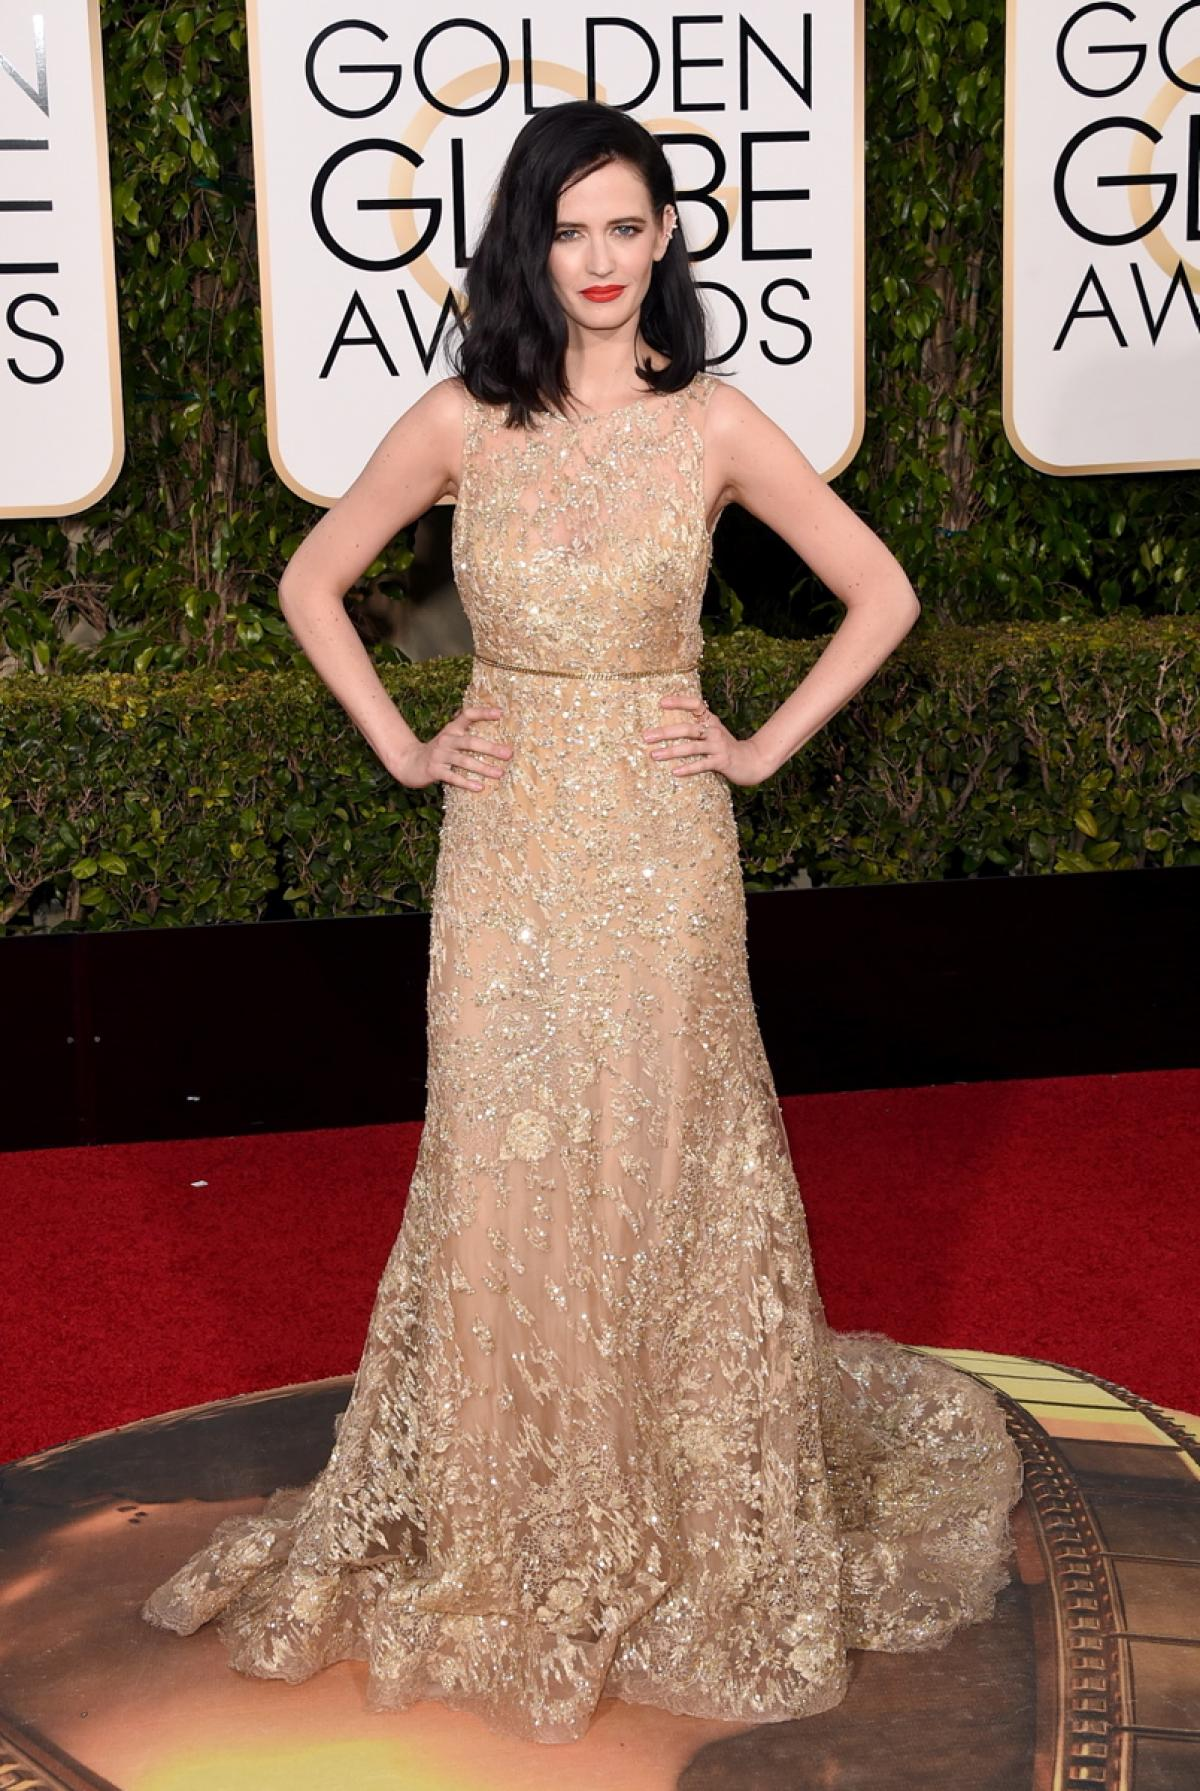 Golden globe 2016 my favorite top ten red carpet dresses huffpost - Golden globes red carpet ...